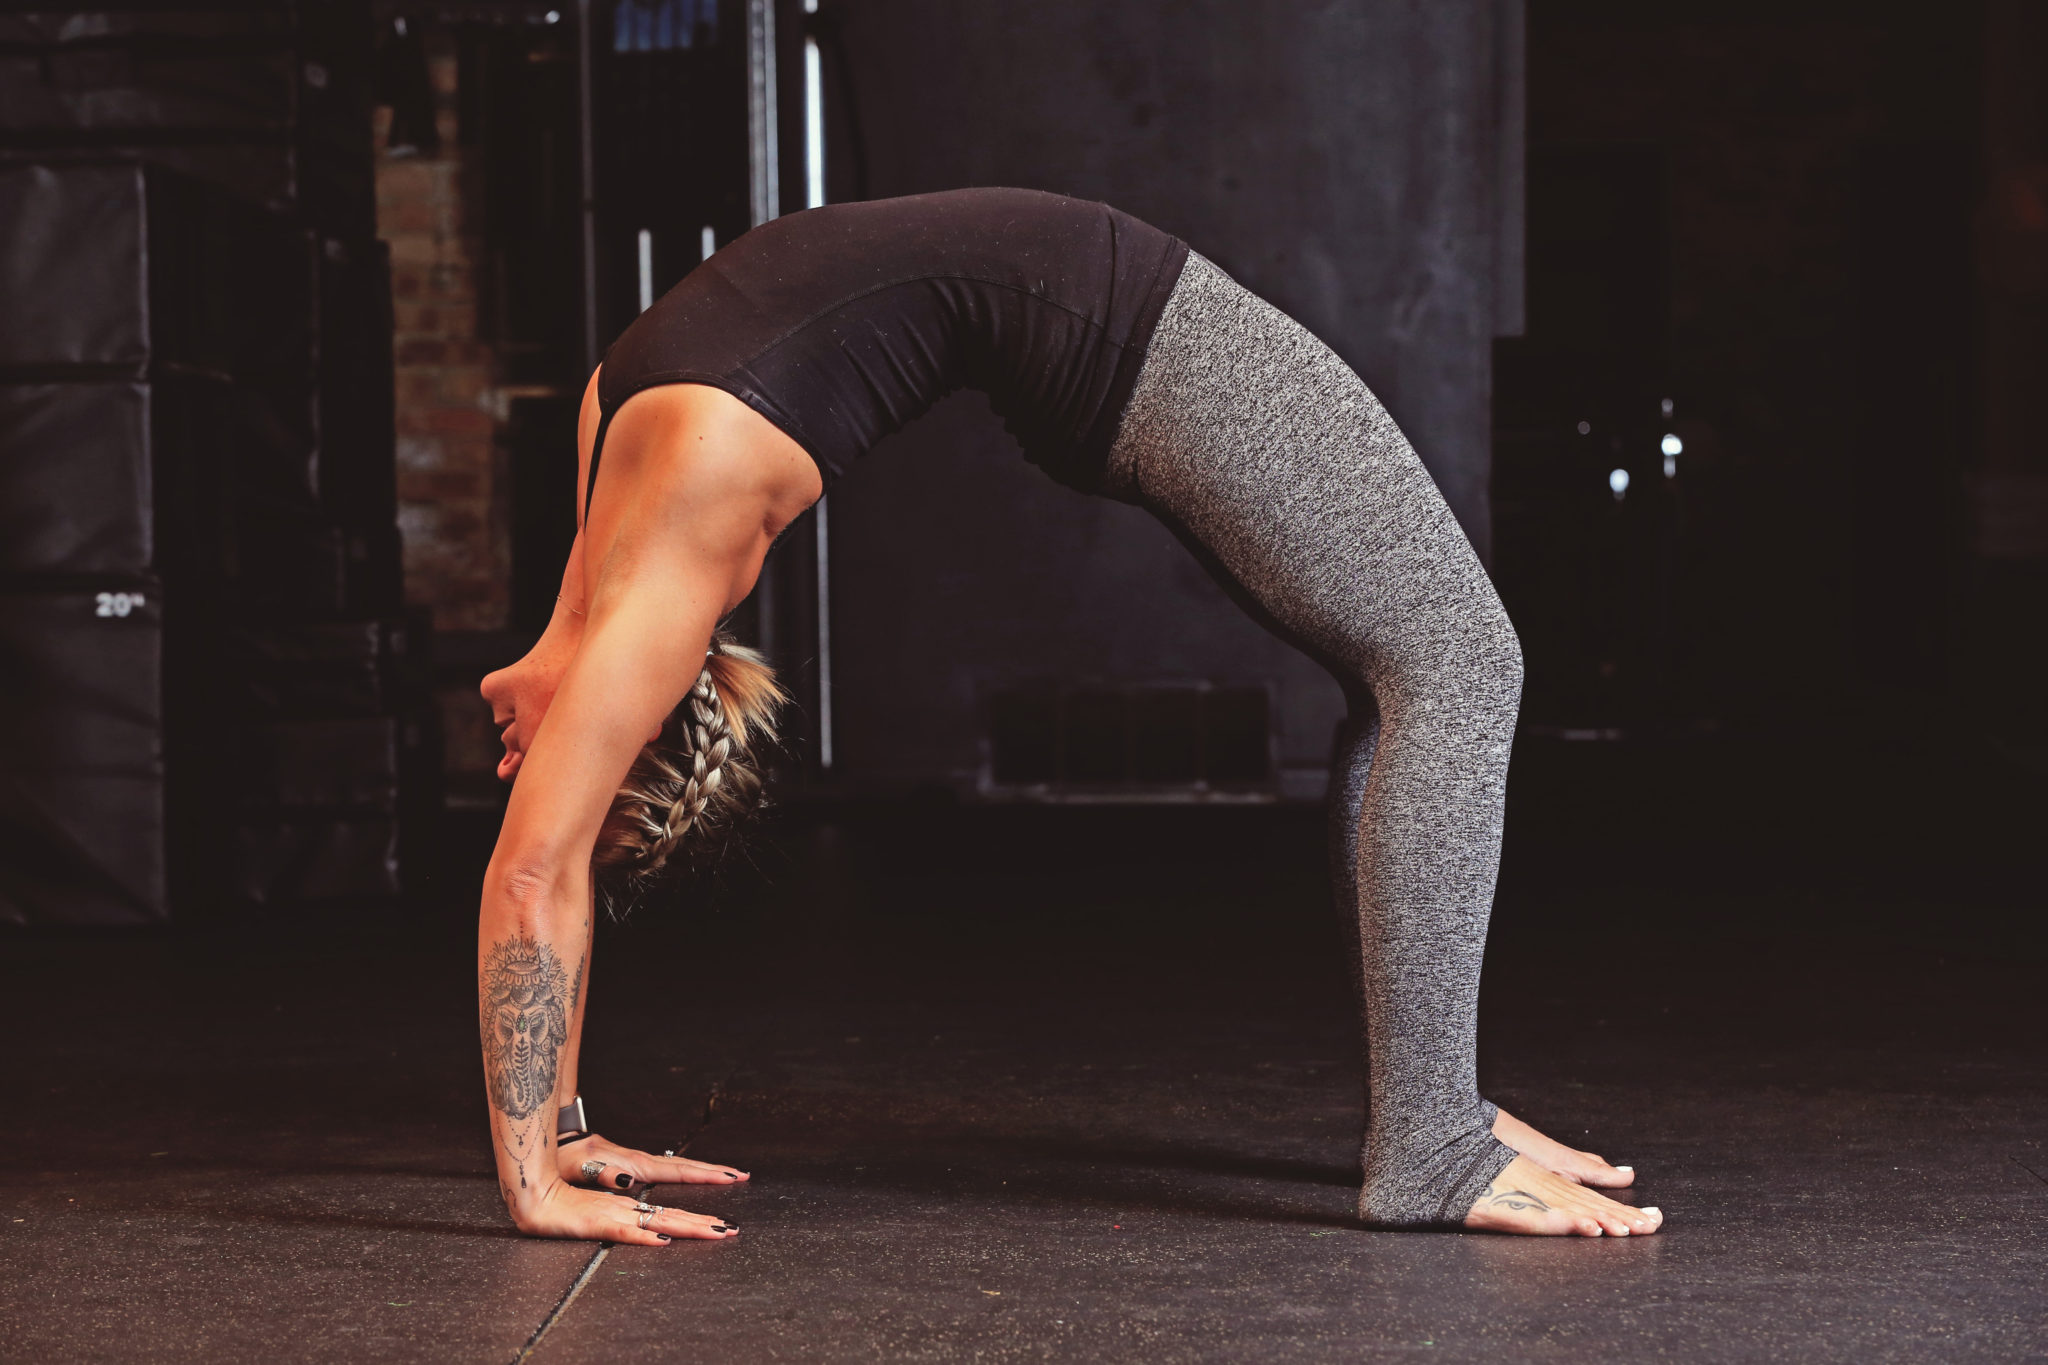 How to practice hot yoga safely